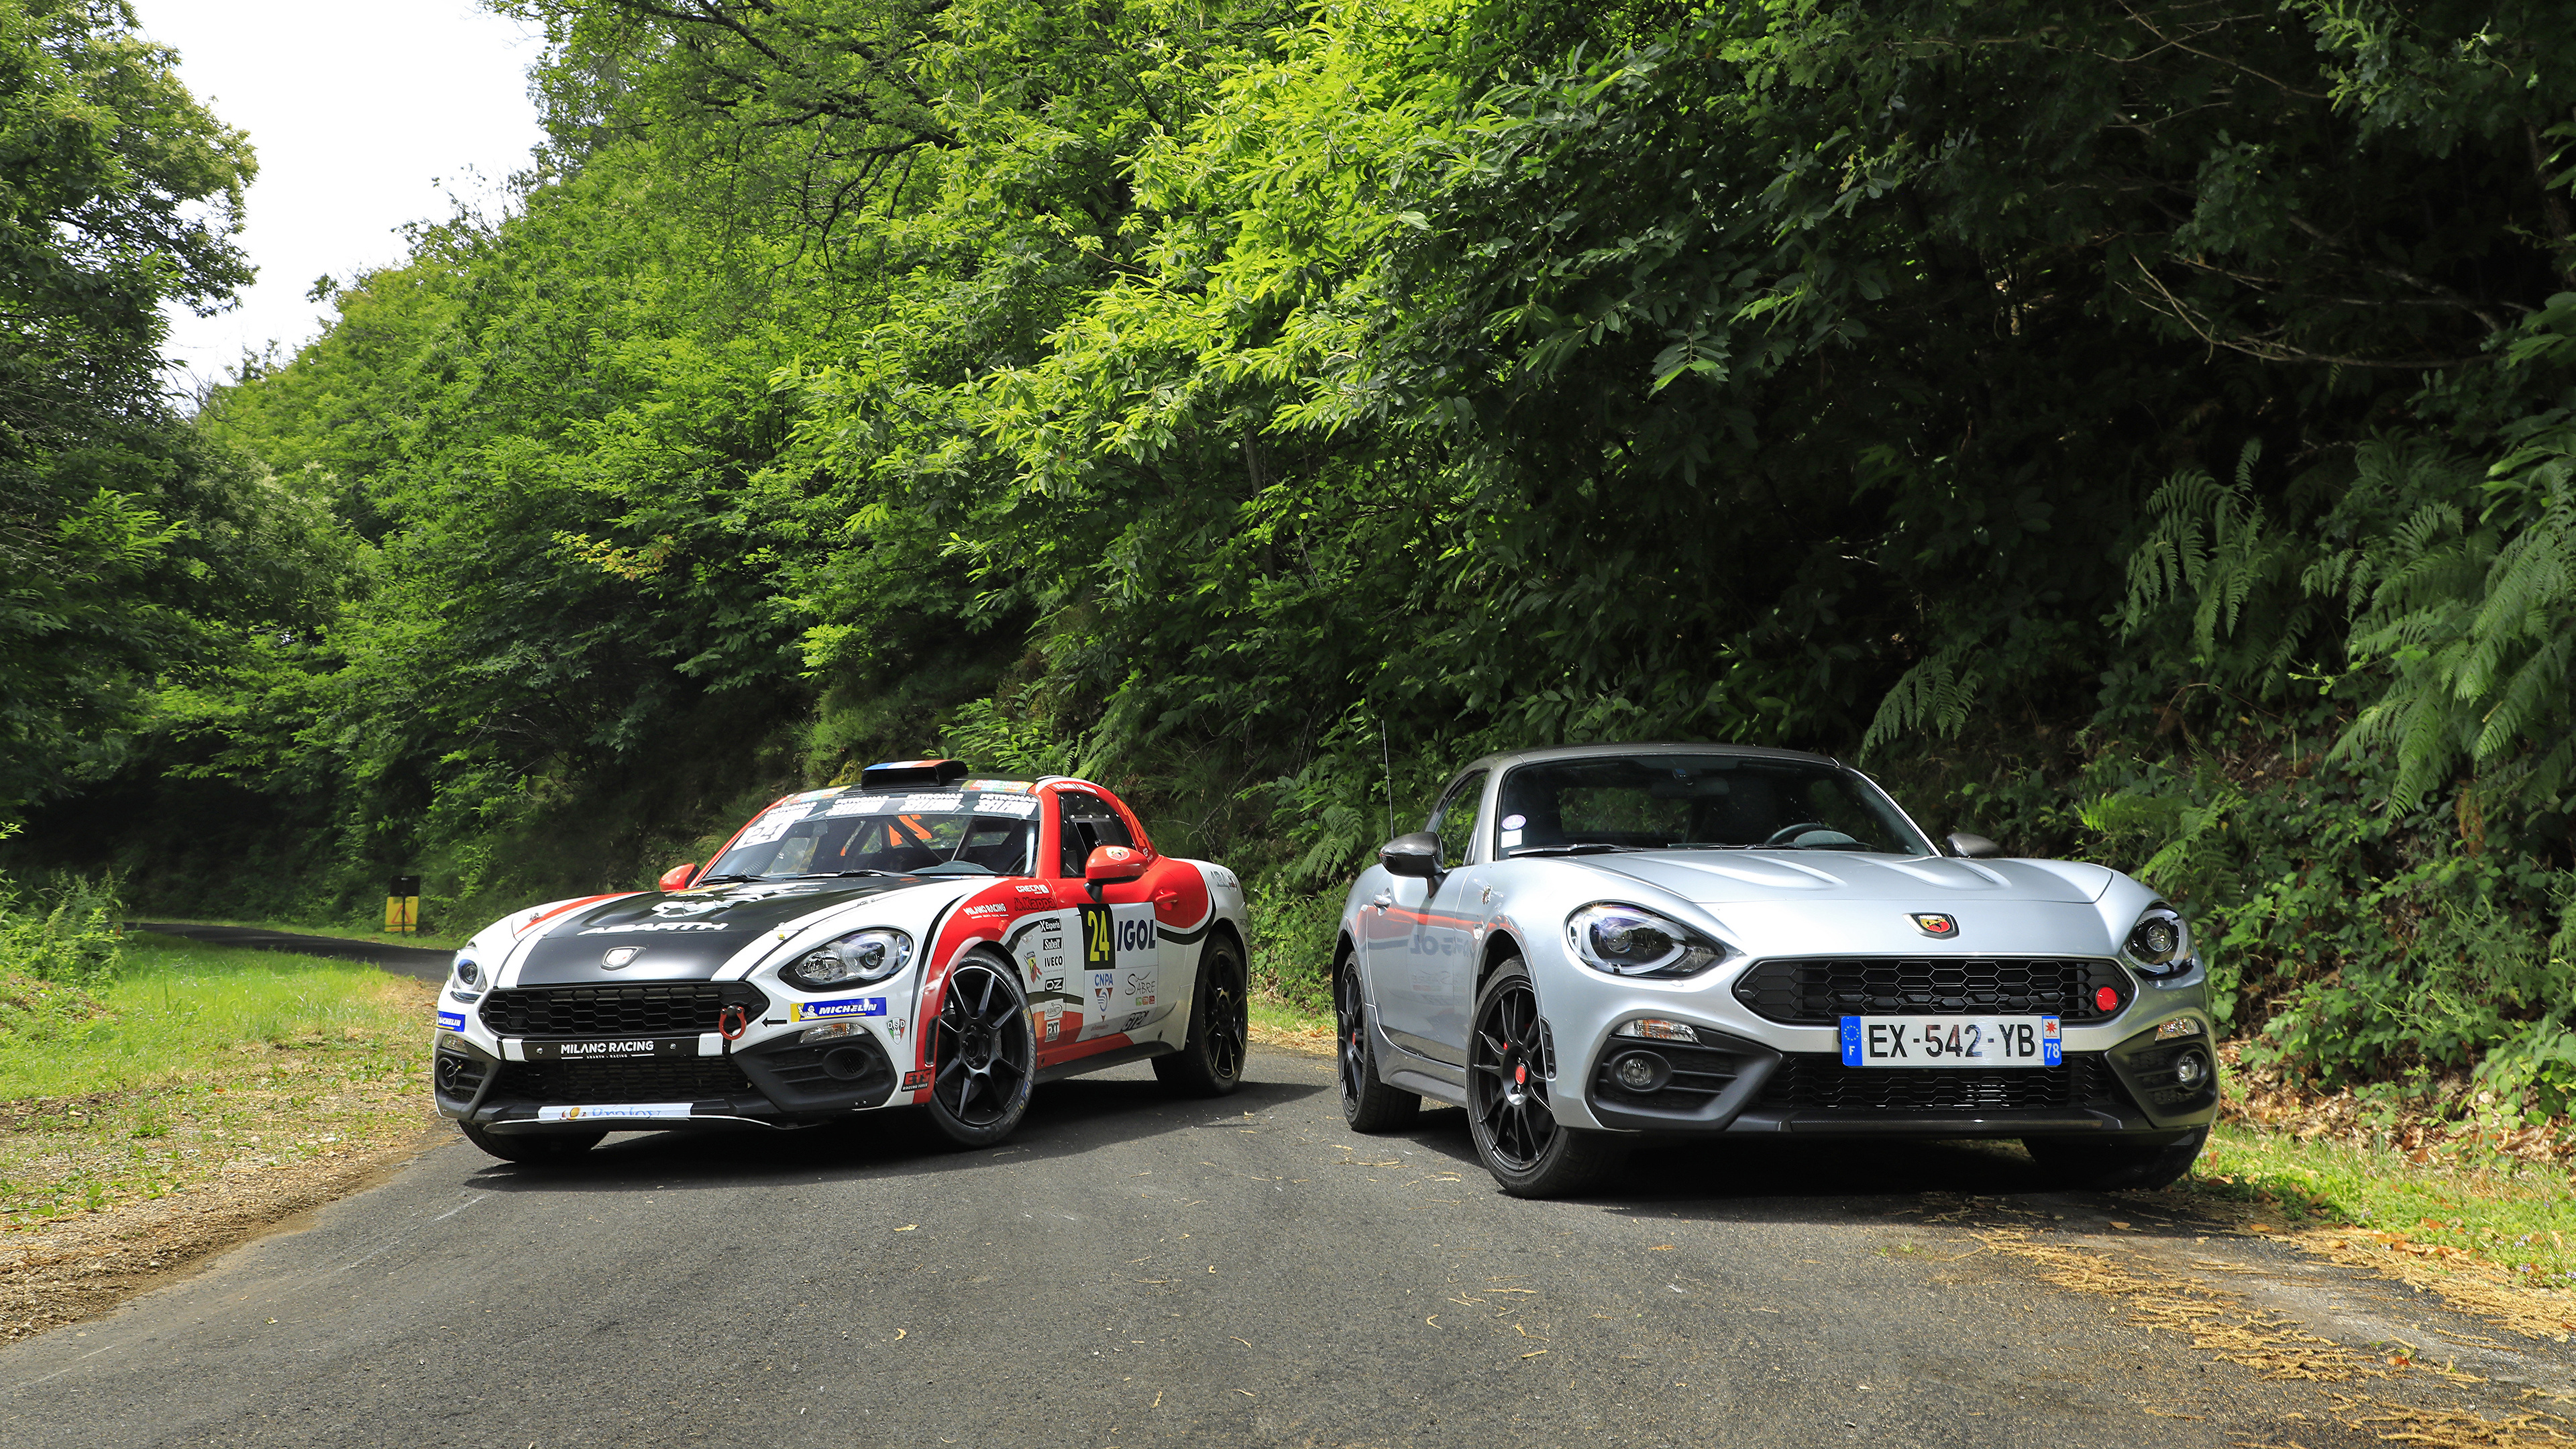 Image Fiat Tuning Abarth 124 Two Cars 3840x2160